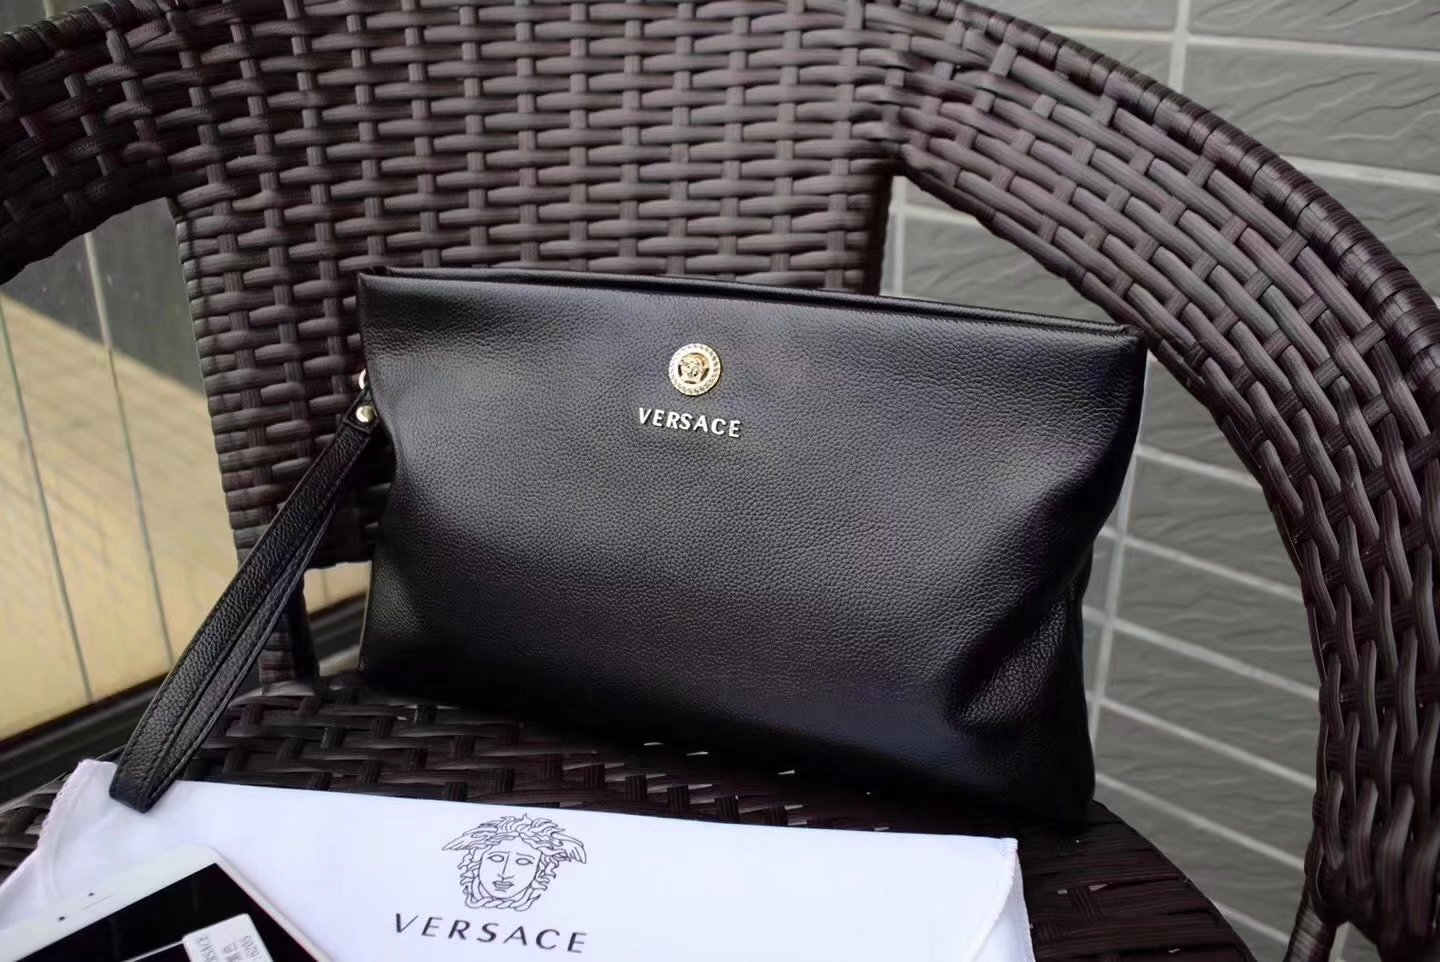 Versace 6205 Leather Men Clutch Bag Black